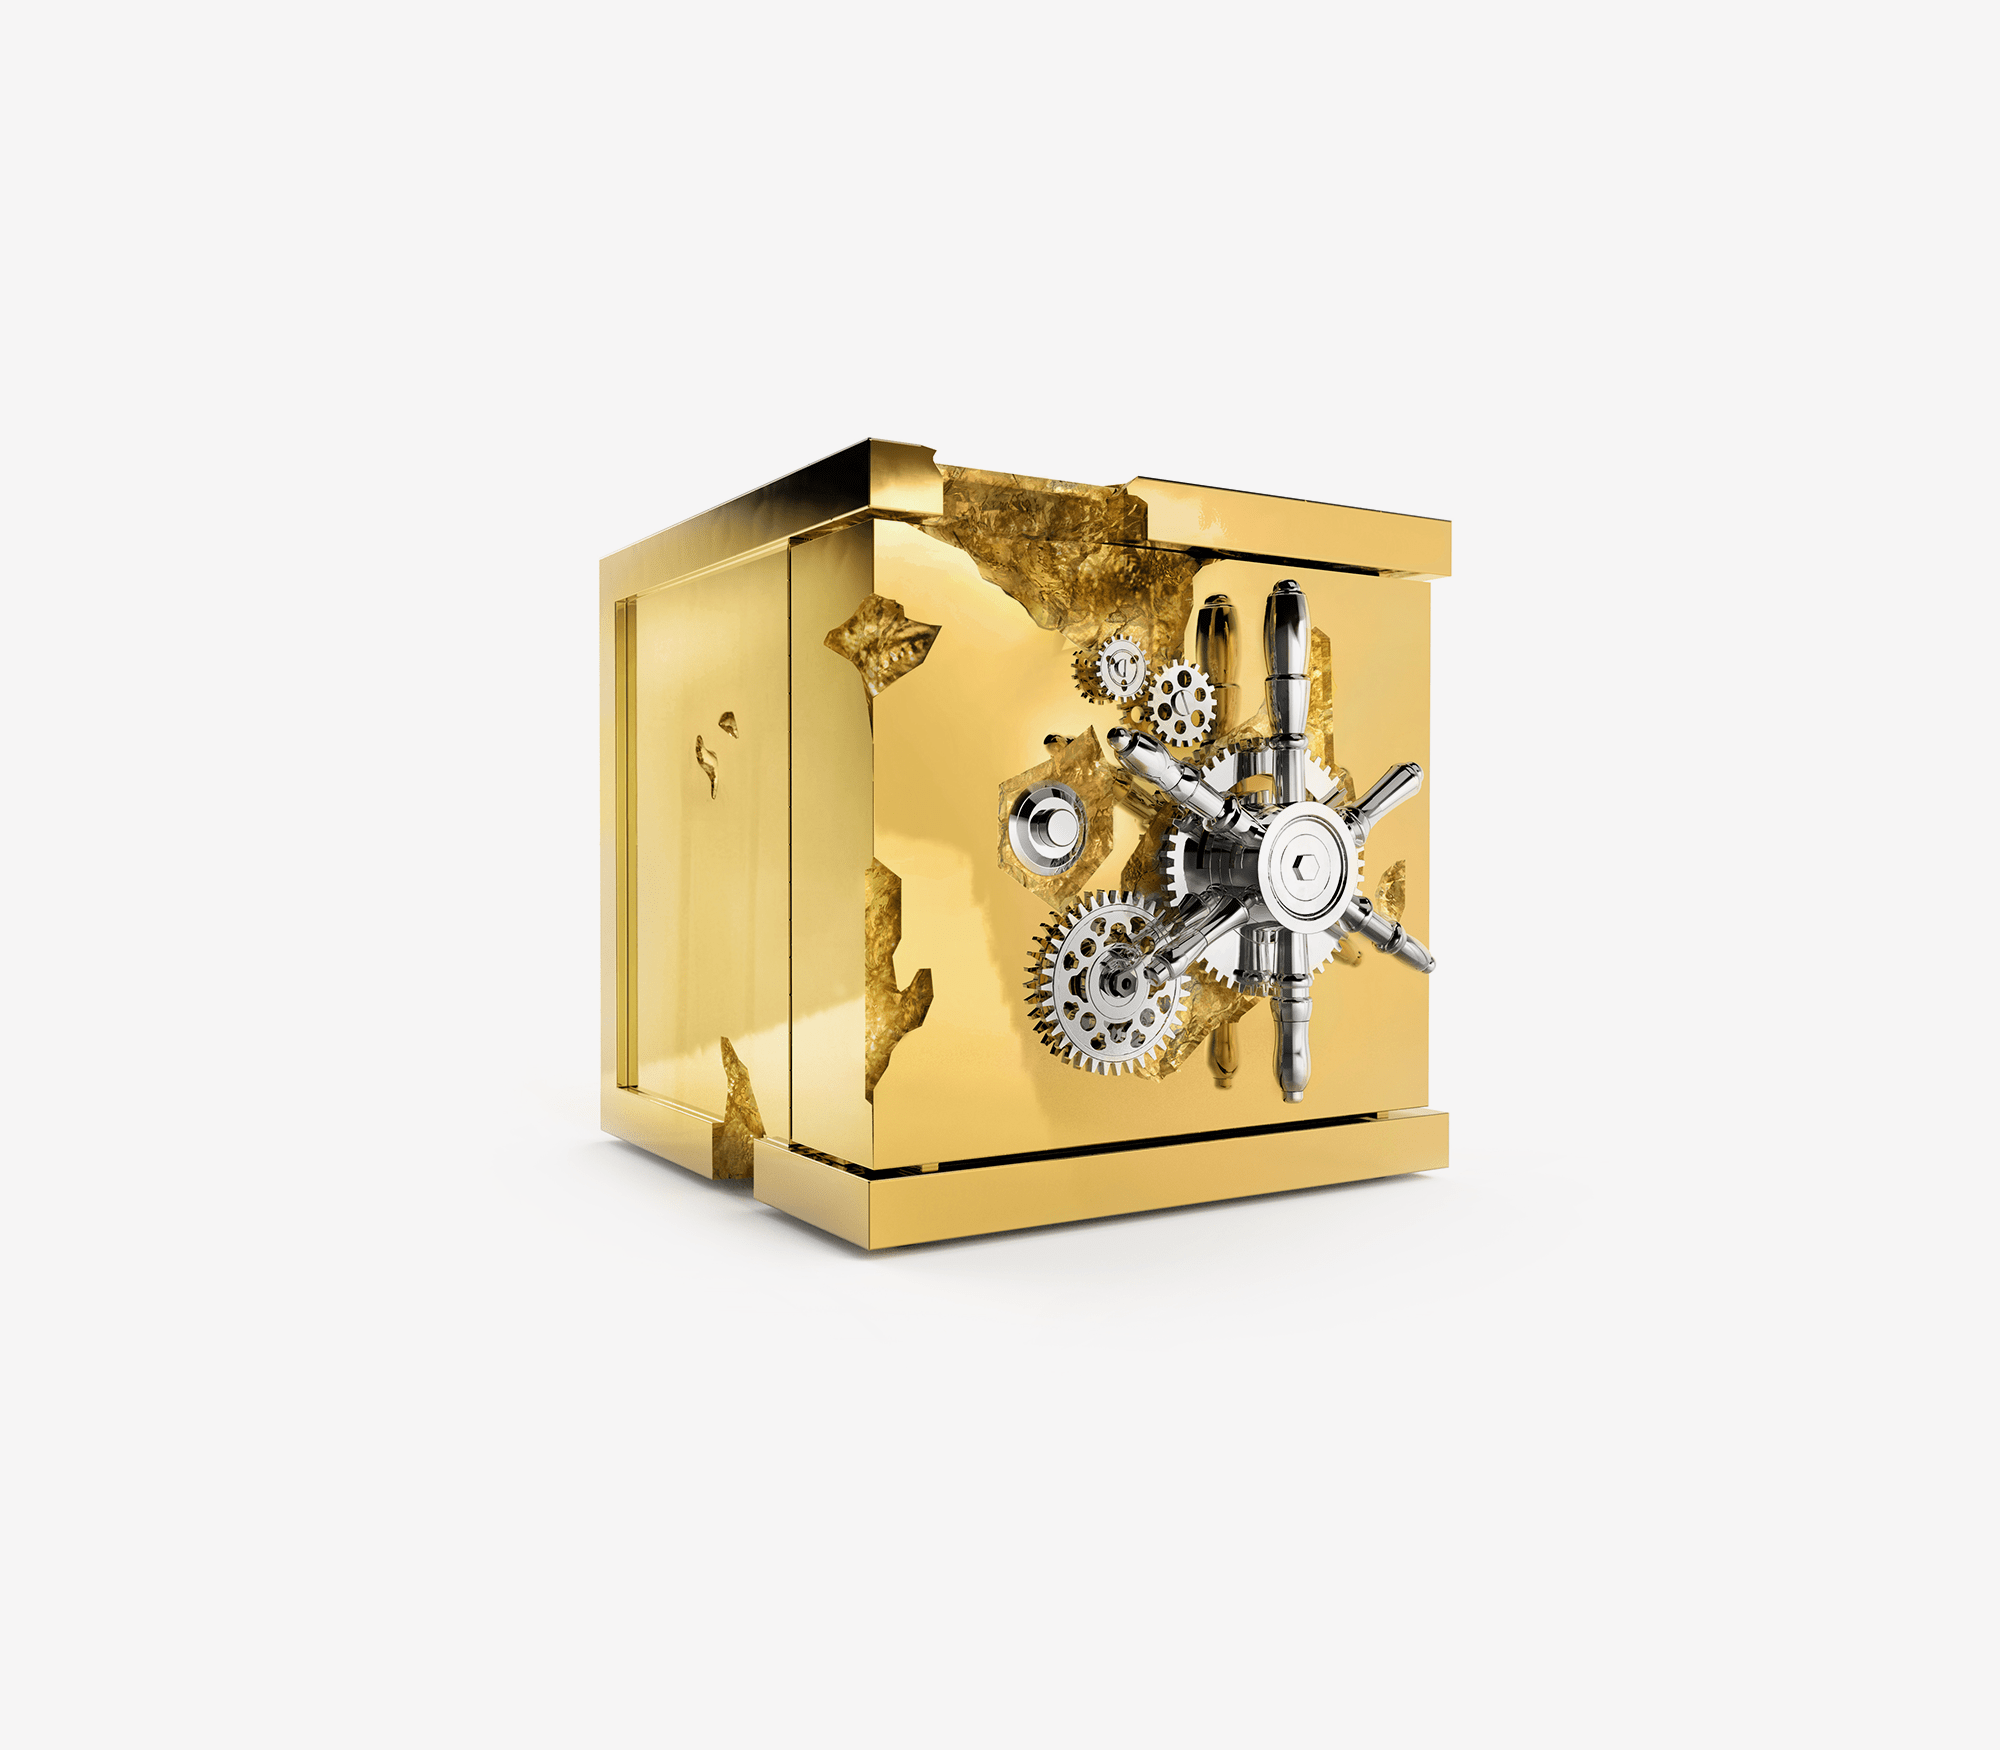 Millionaire Jewelry Safe by Boca do Lobo